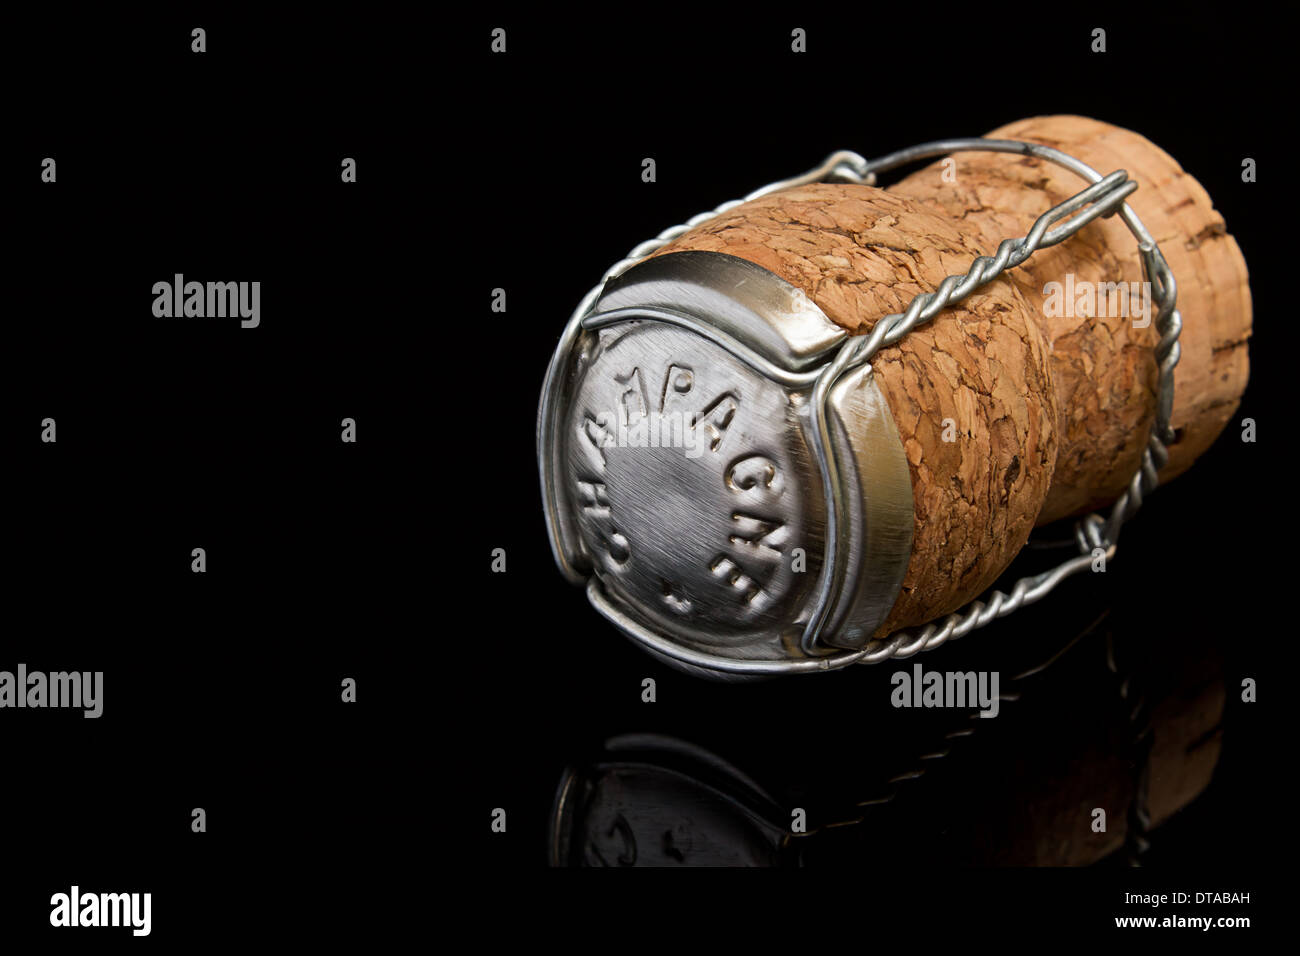 champagne Cork a great symbol for high society or concept for prestige or upper class status - Stock Image